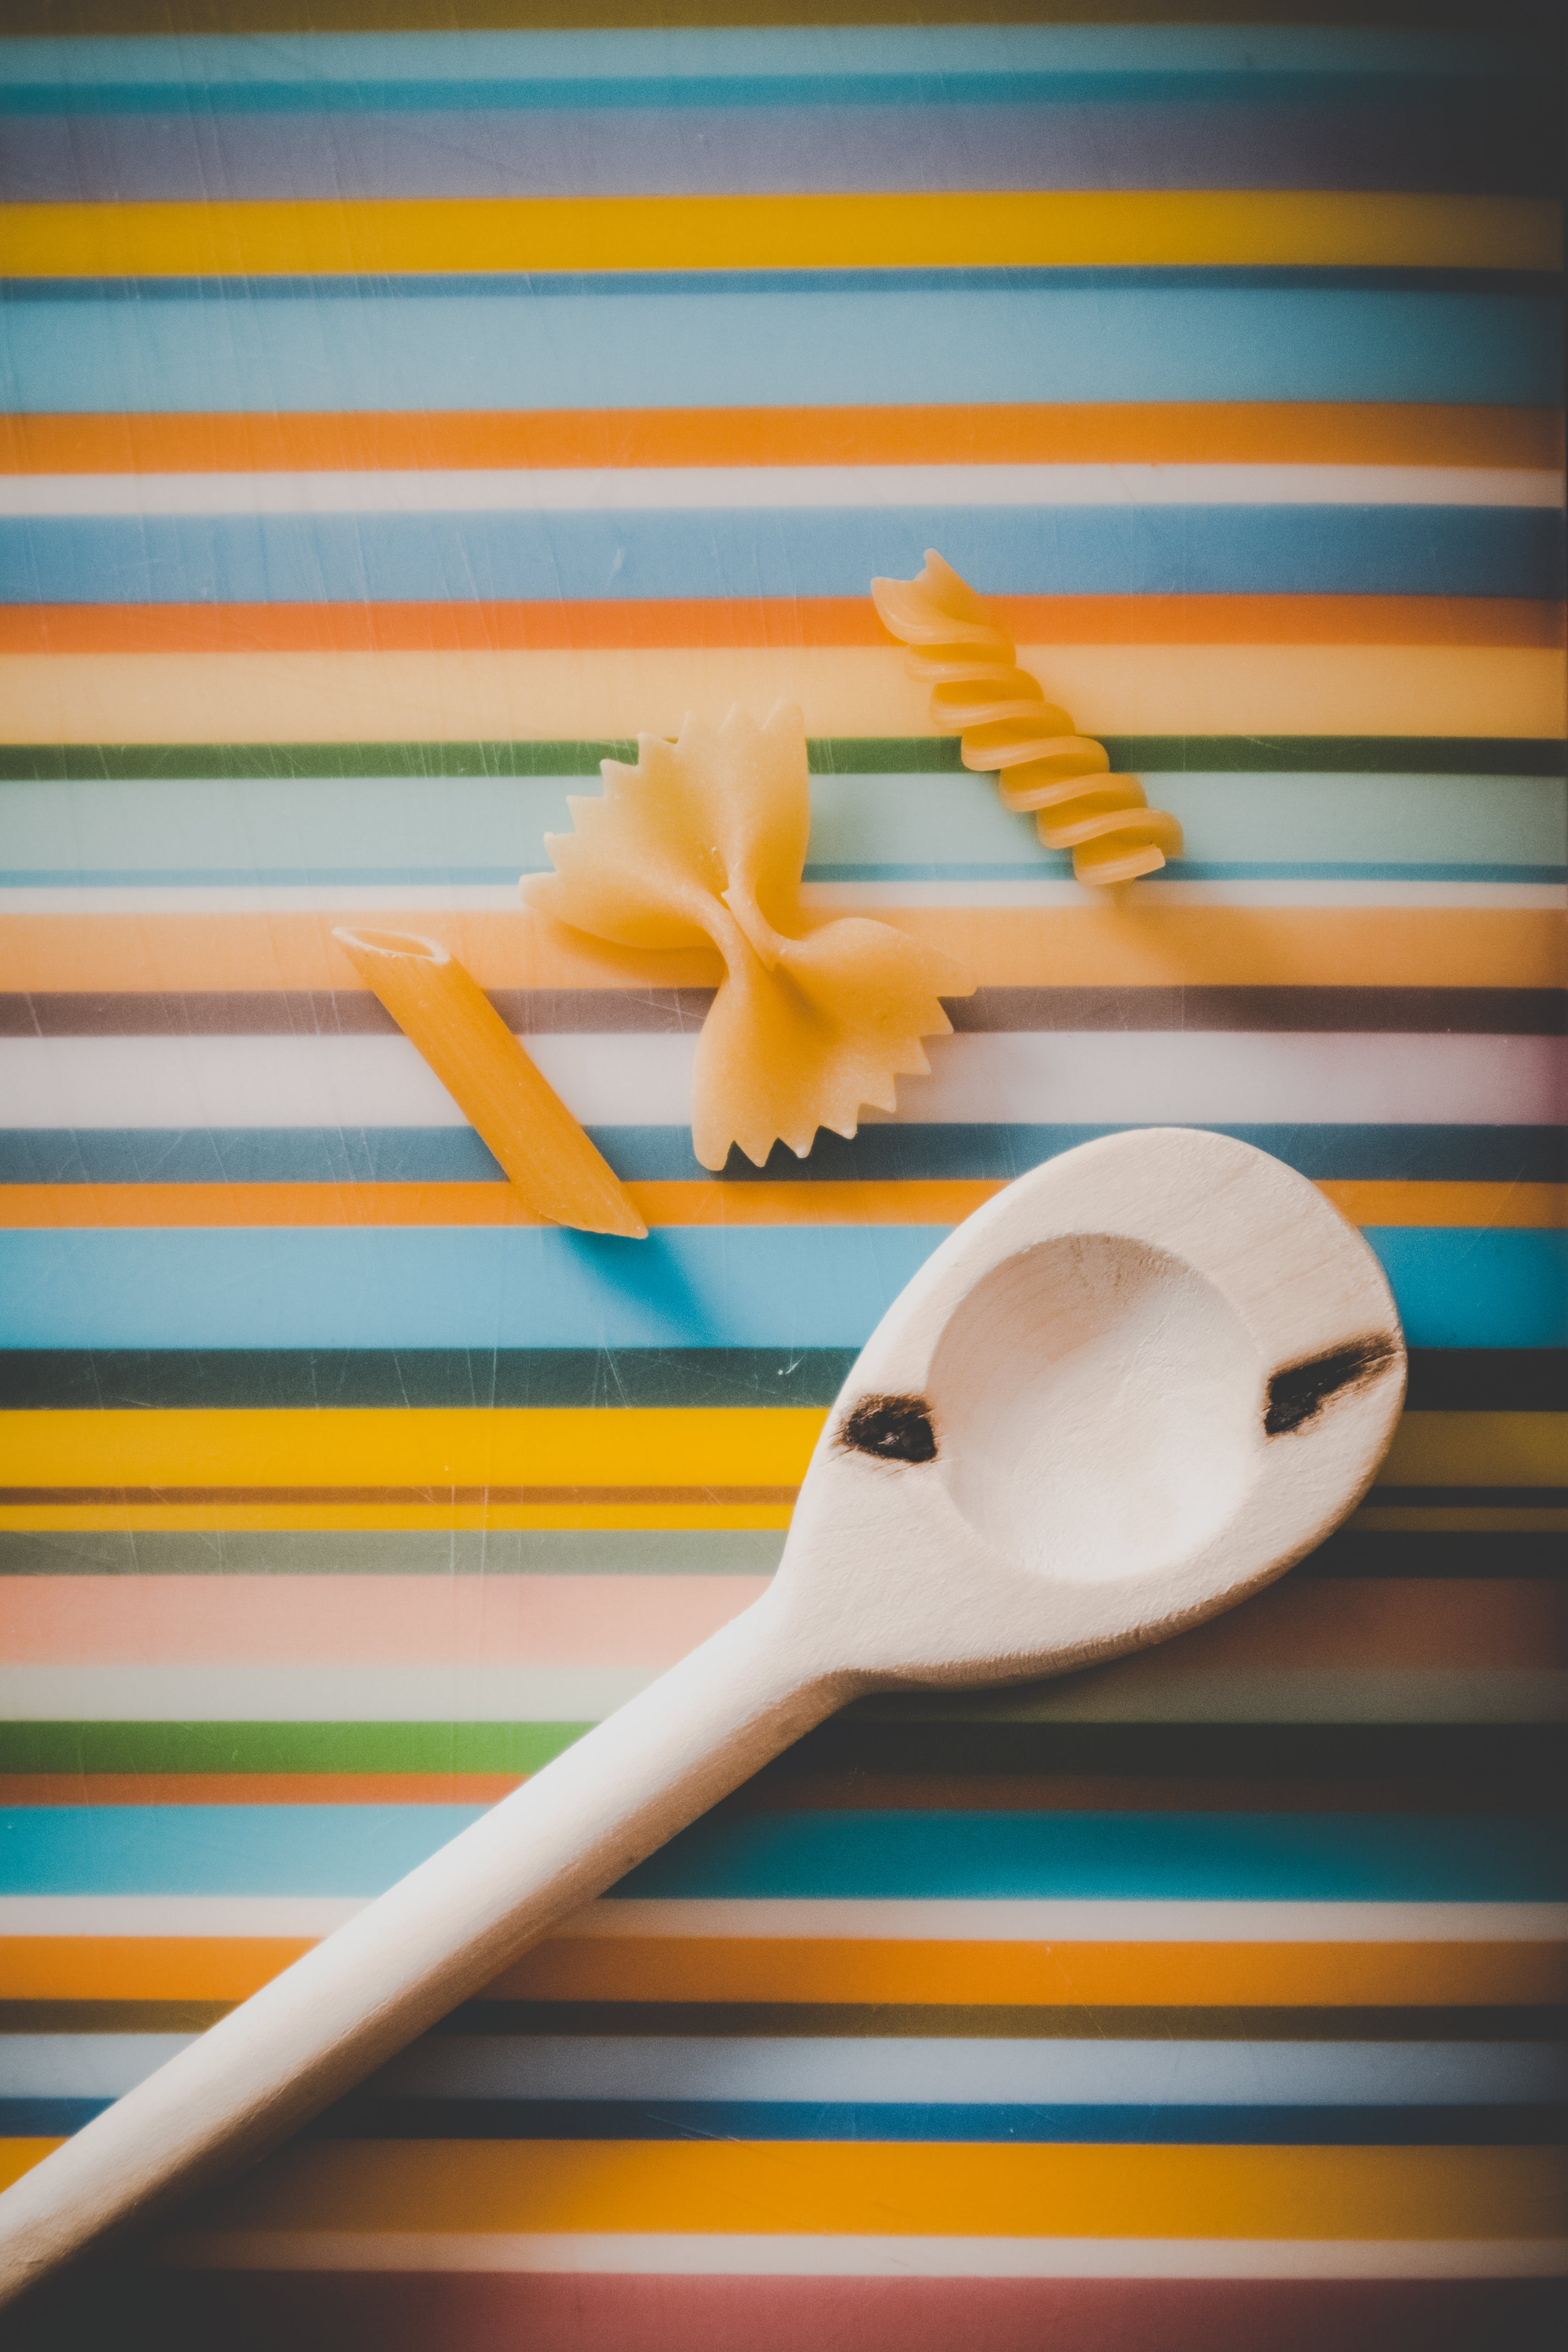 Free stock photo of food, pasta, kitchen, cooking